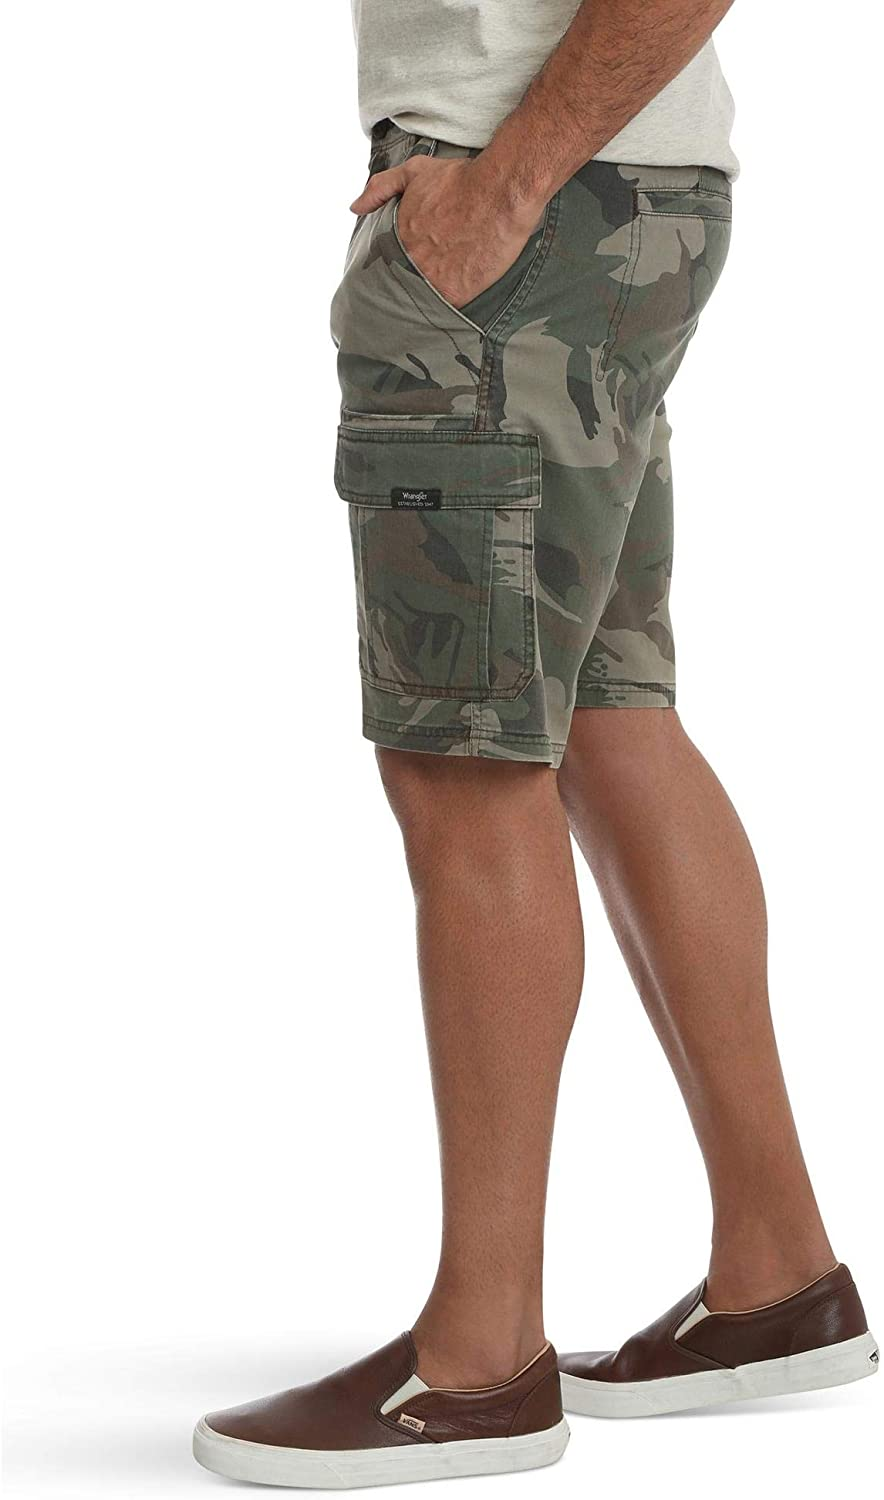 Wrangler Green Camo Camouflage Relaxed Fit at Knee Flex Cargo Shorts